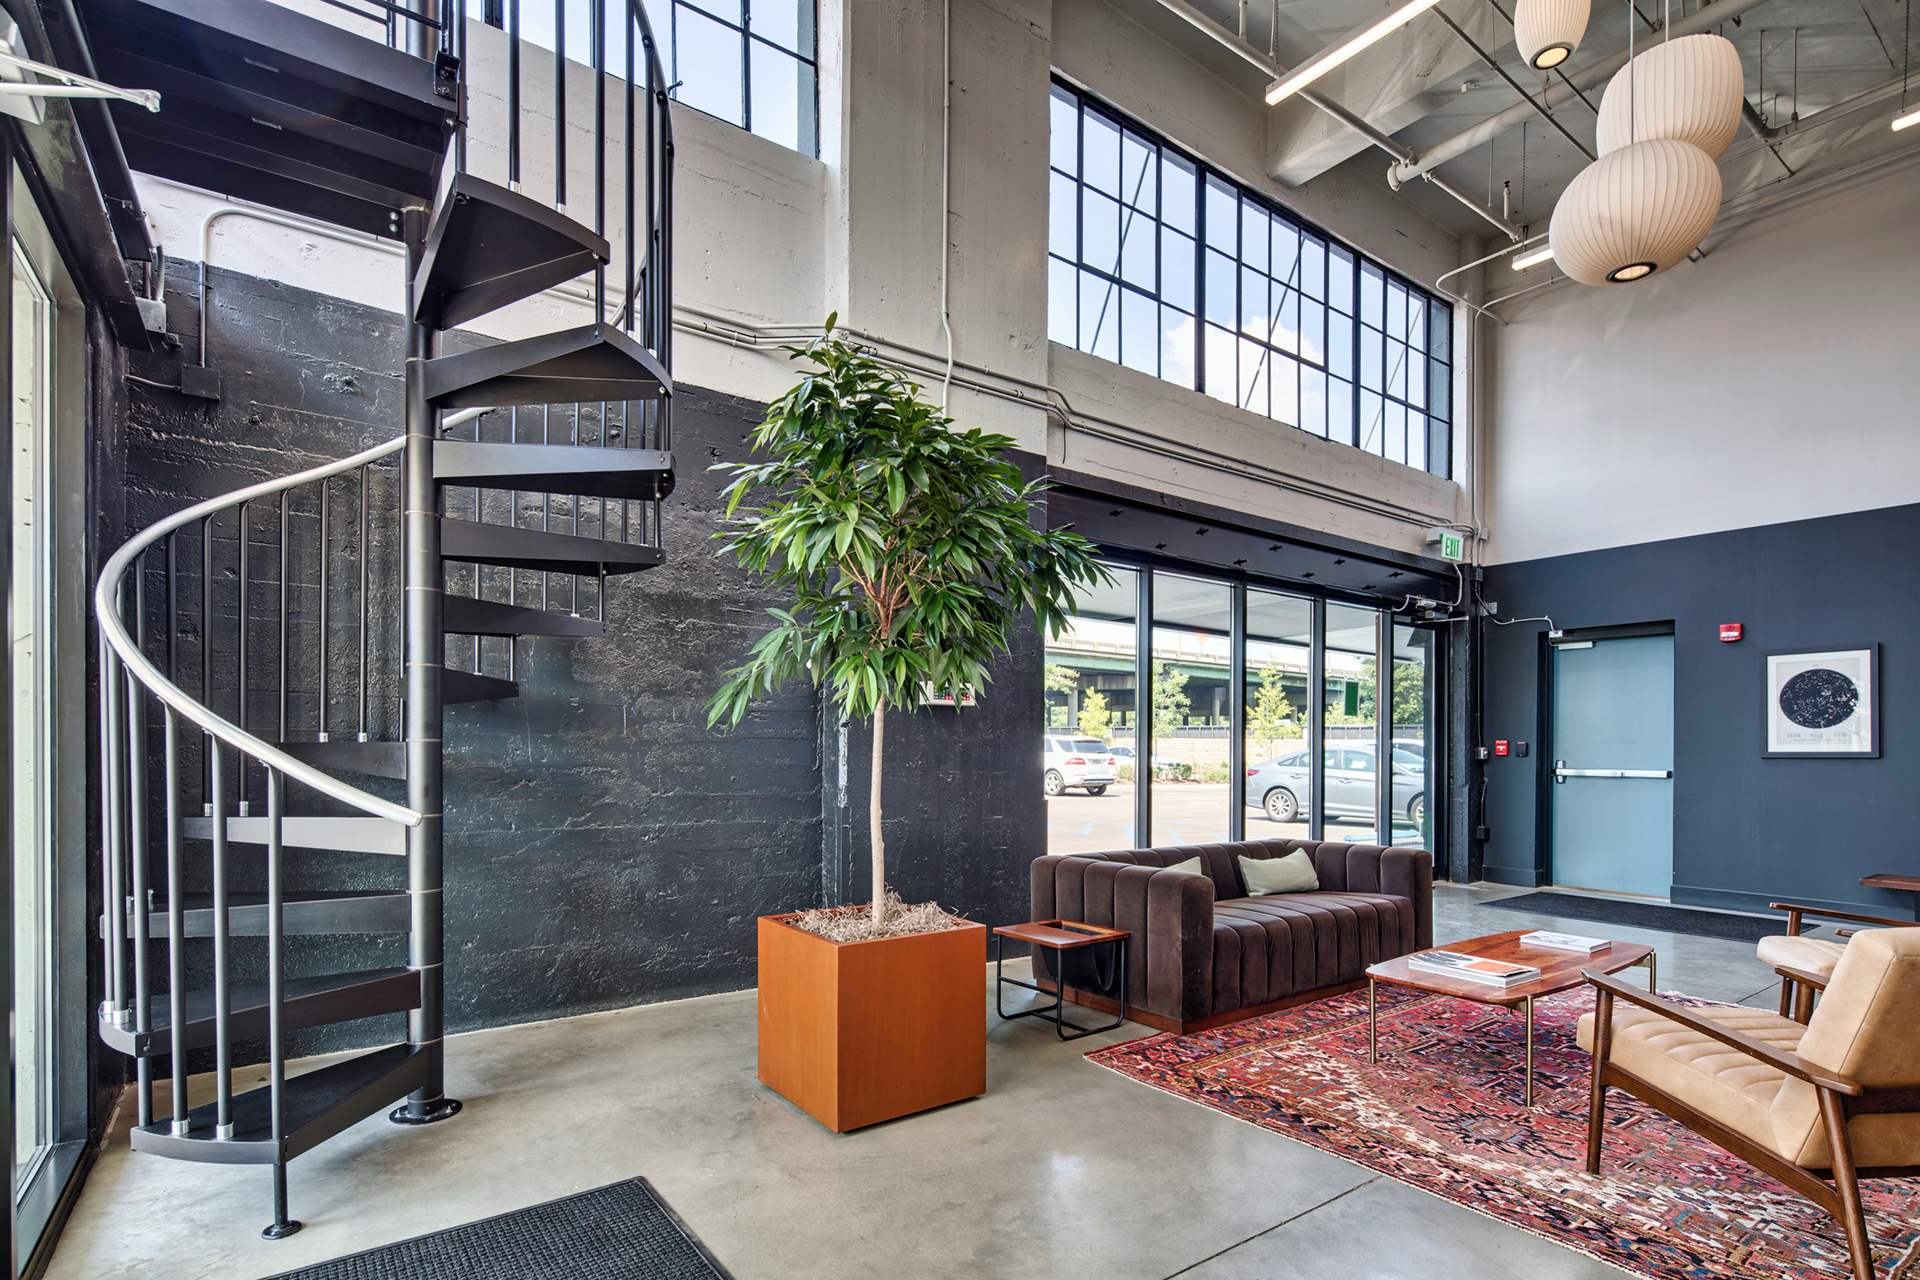 Large seating area with indoor plants and spiral staircase at The Denham Building loft apartments for rent